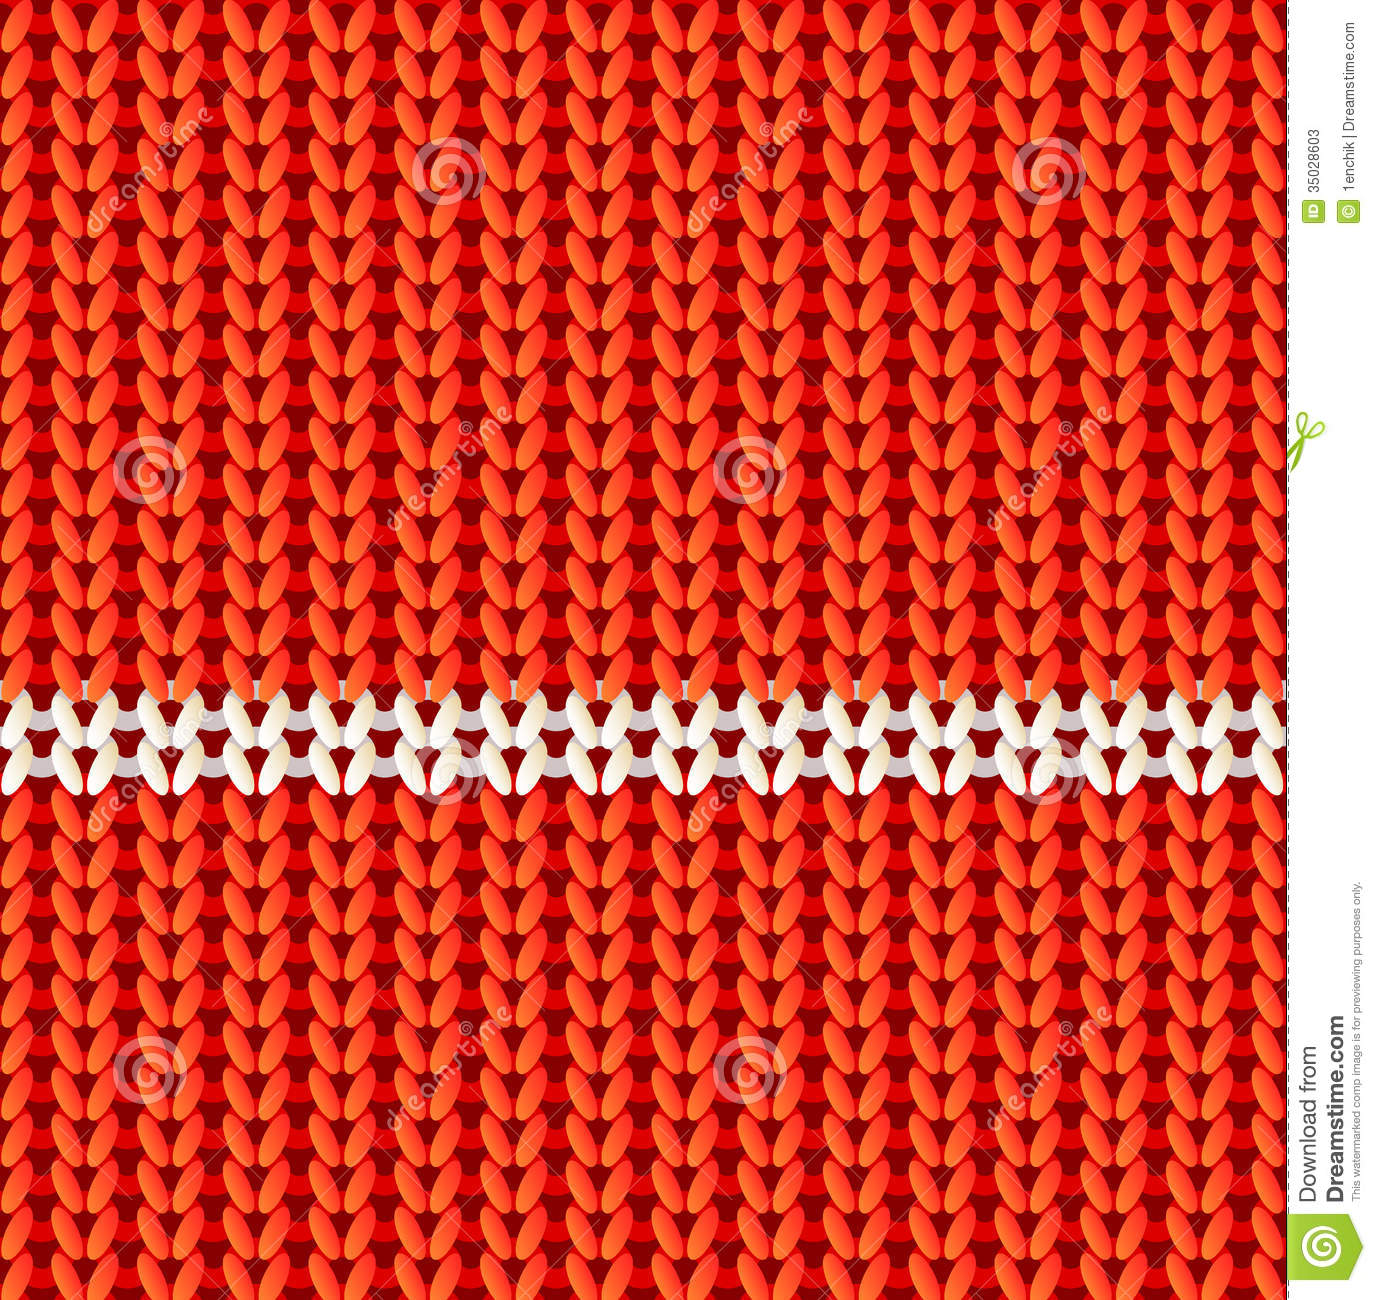 Knitting Pattern Vector Download : Red Knitted Vector Seamless Pattern Stock Photos - Image ...